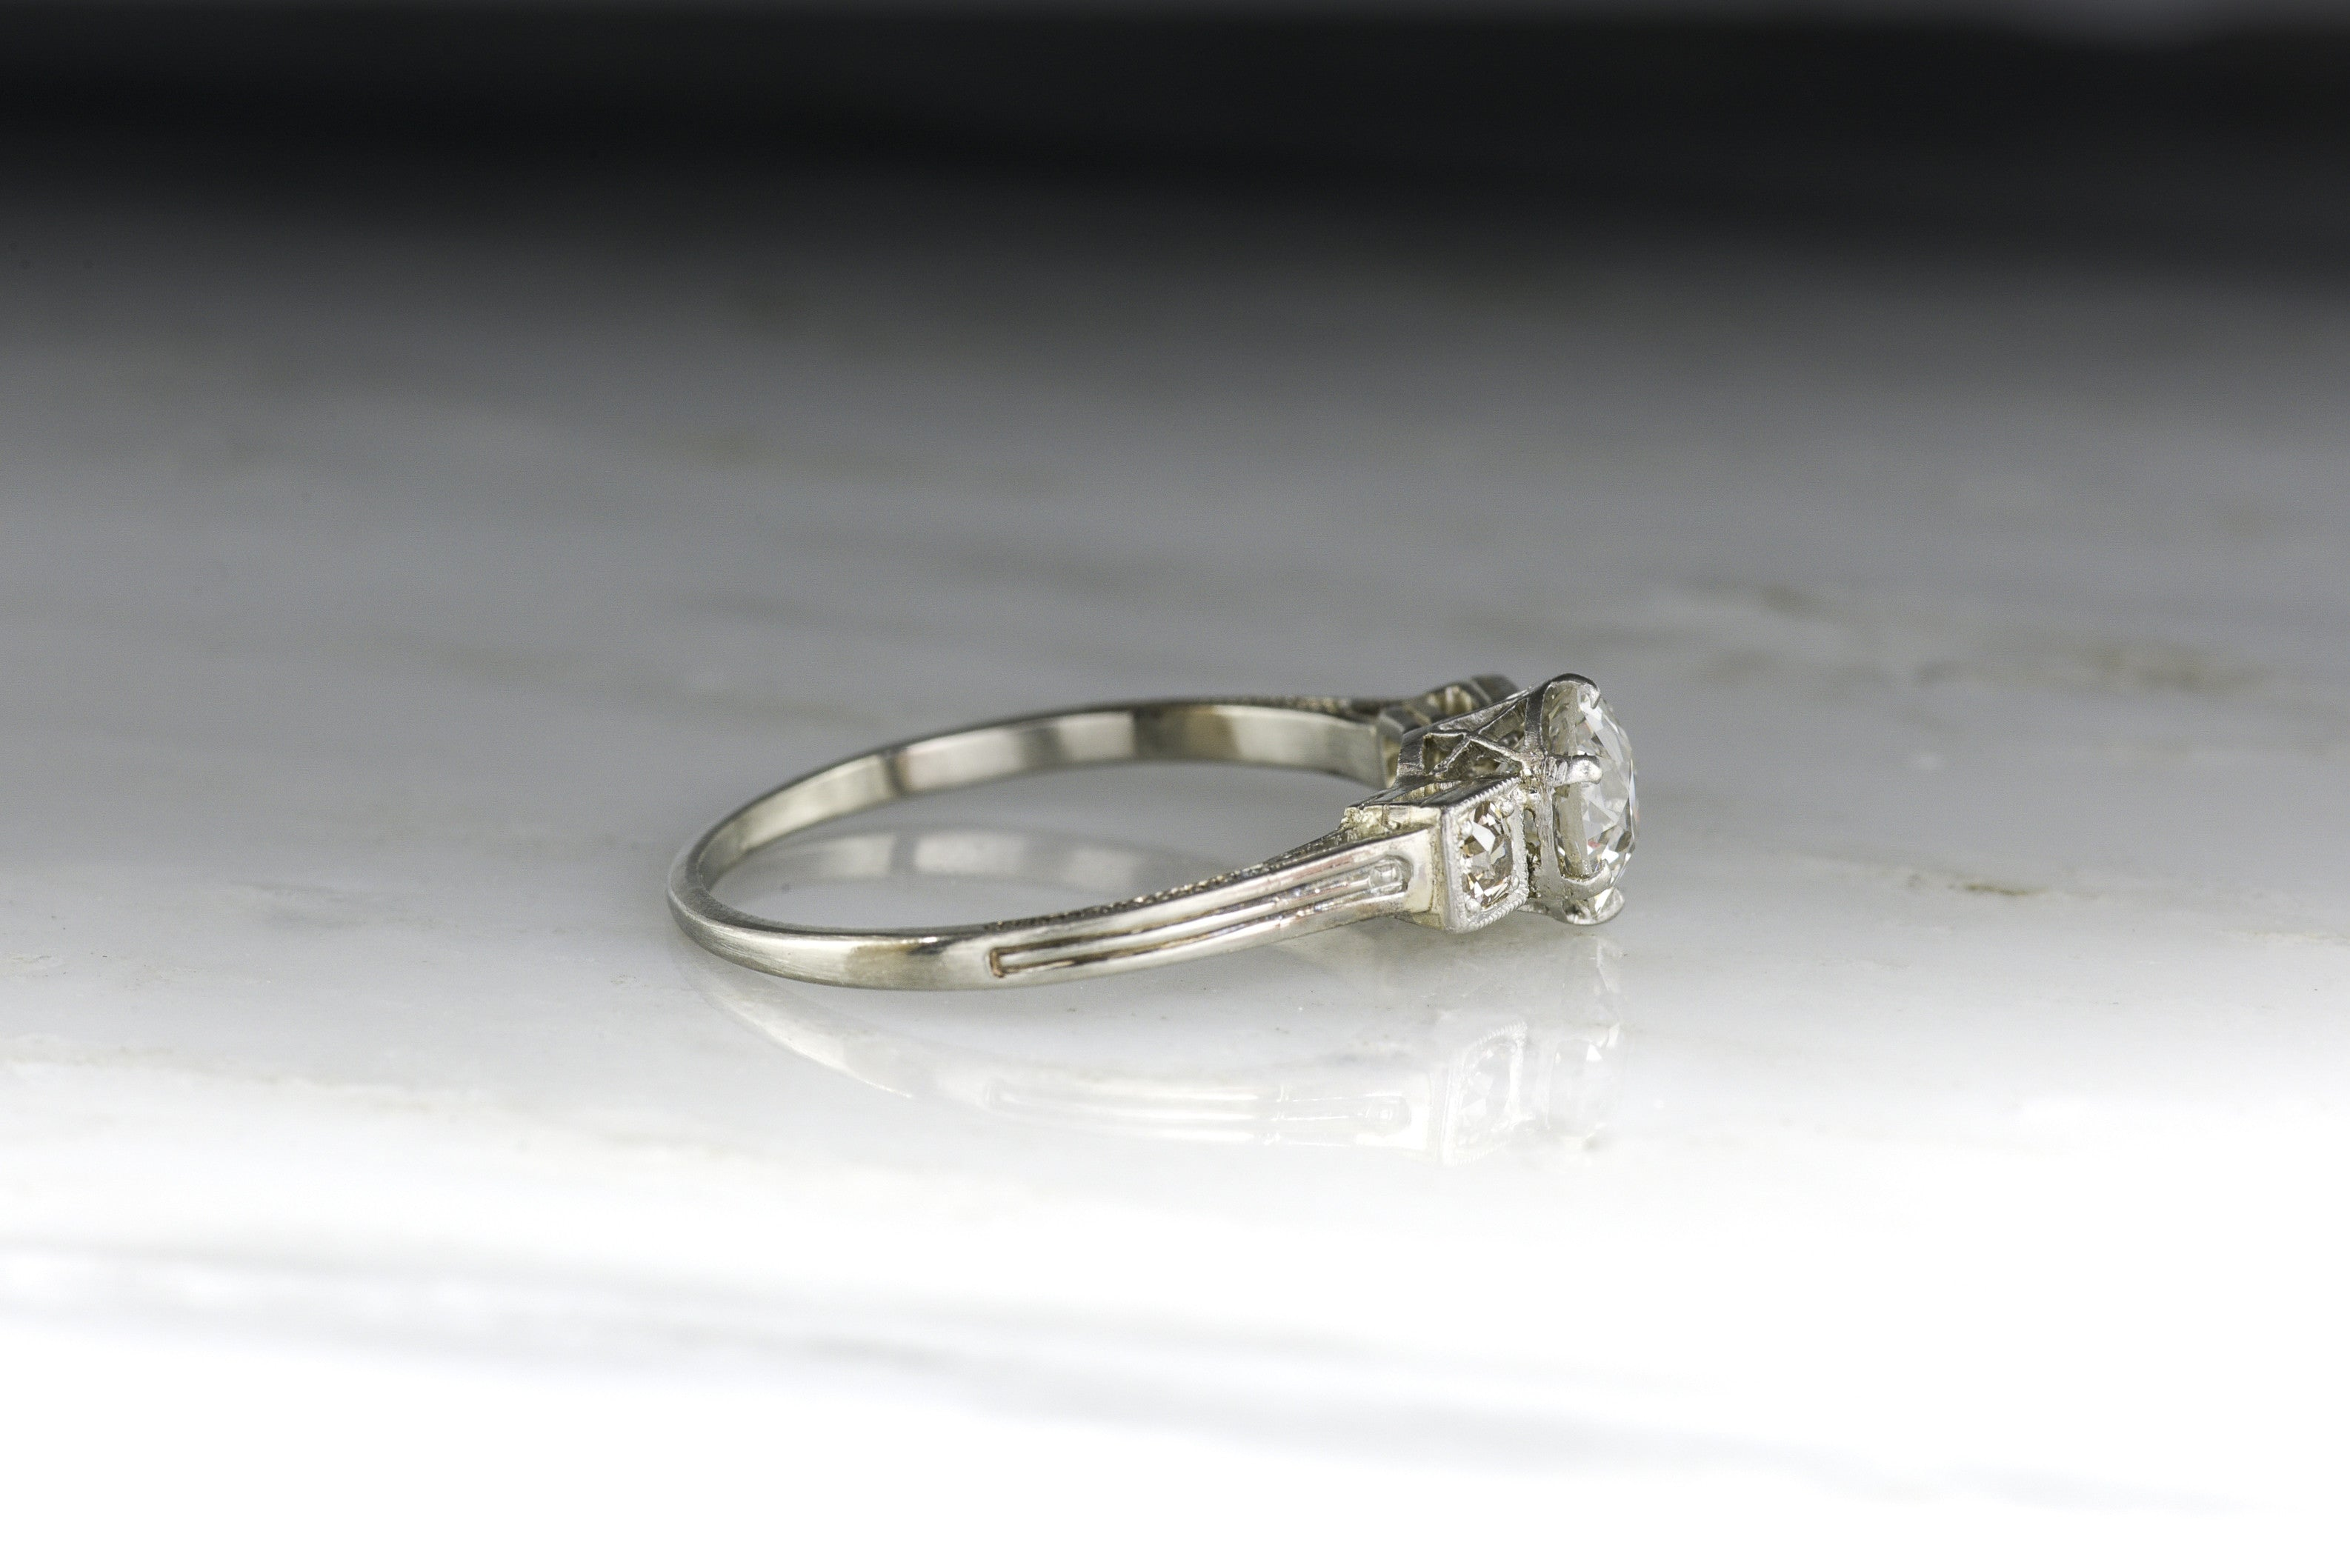 Retro Design With A 95  Carat Old European Cut Diamond Center (110 Ctw)